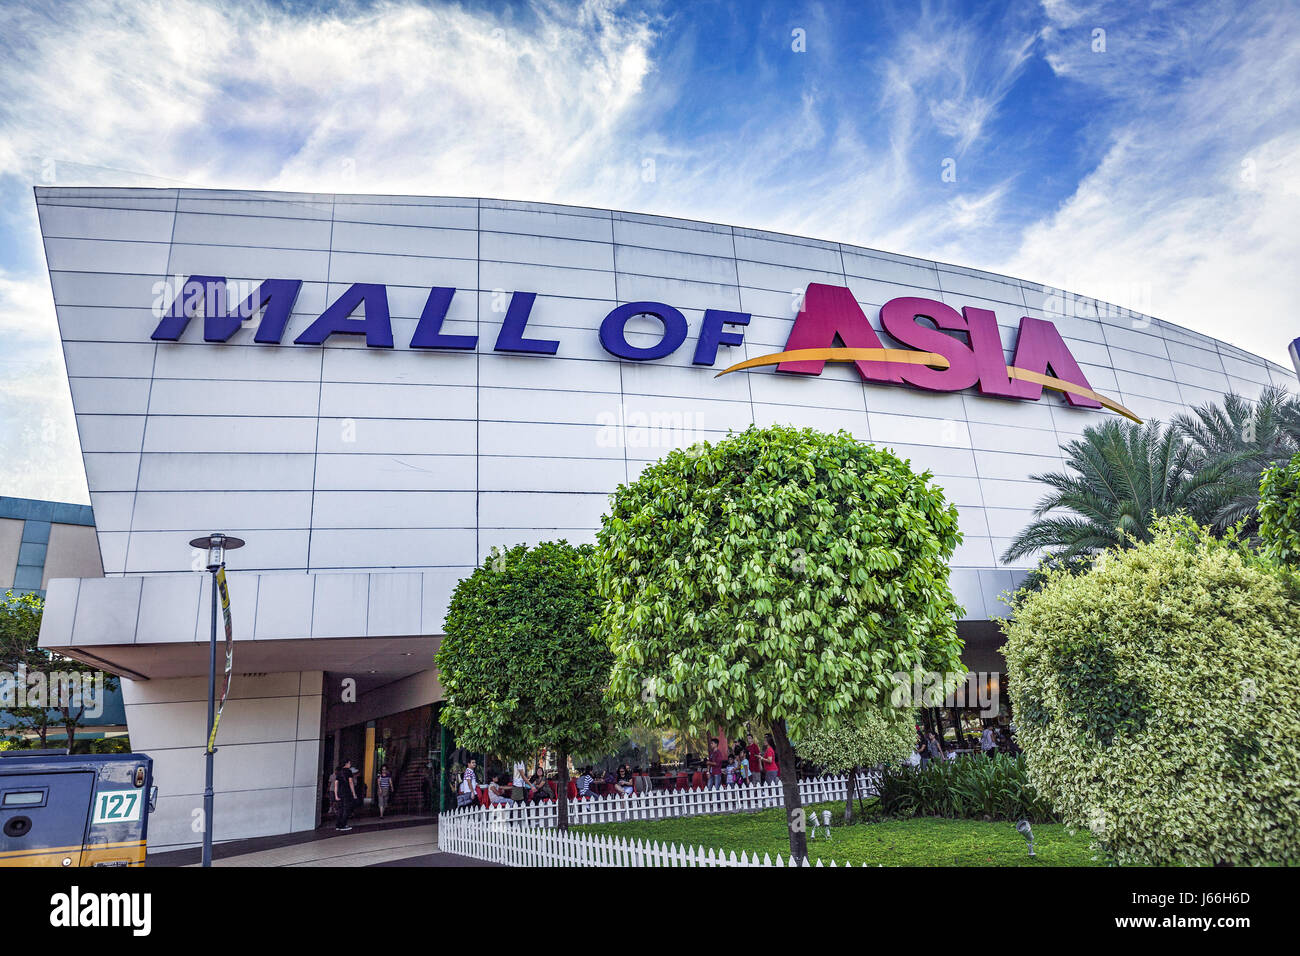 Facade of the SM Mall of Asia, SM MOA, 4th largest shopping mall in the Philippines in Bay City, Pasay, Luzon Island, - Stock Image